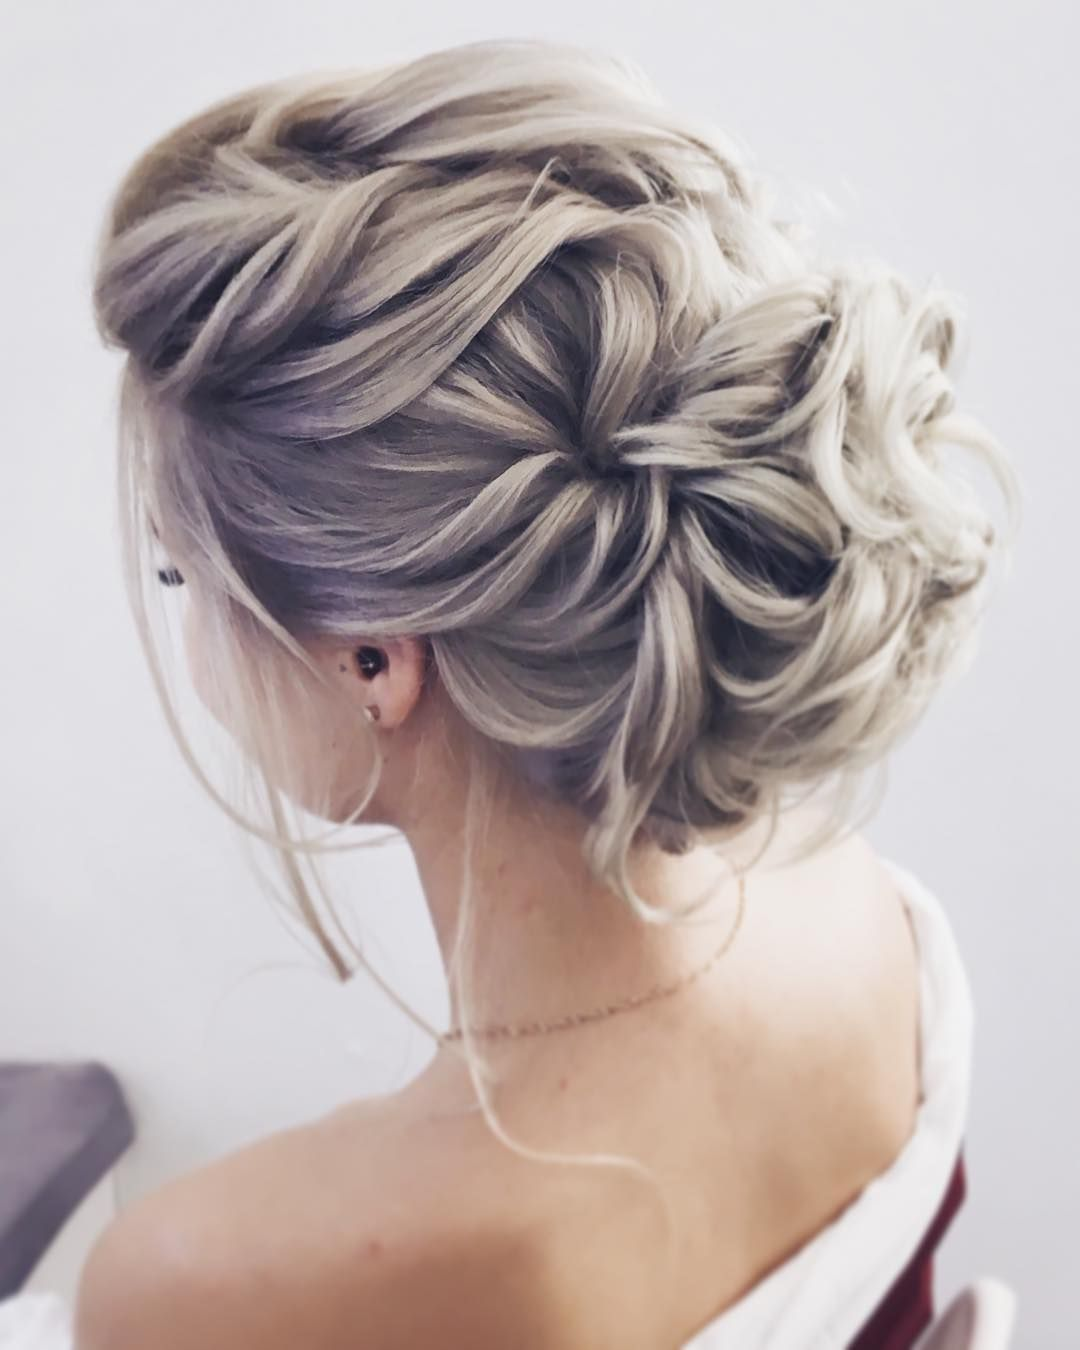 Messy Bridal Updo Hairstyles Hairstyles Updos Wedding Hairstyle Ideas Messy Wedding Updo Hairstyles Romantic Updo Hairstyles Messy Hairstyles Easy Hair Updos